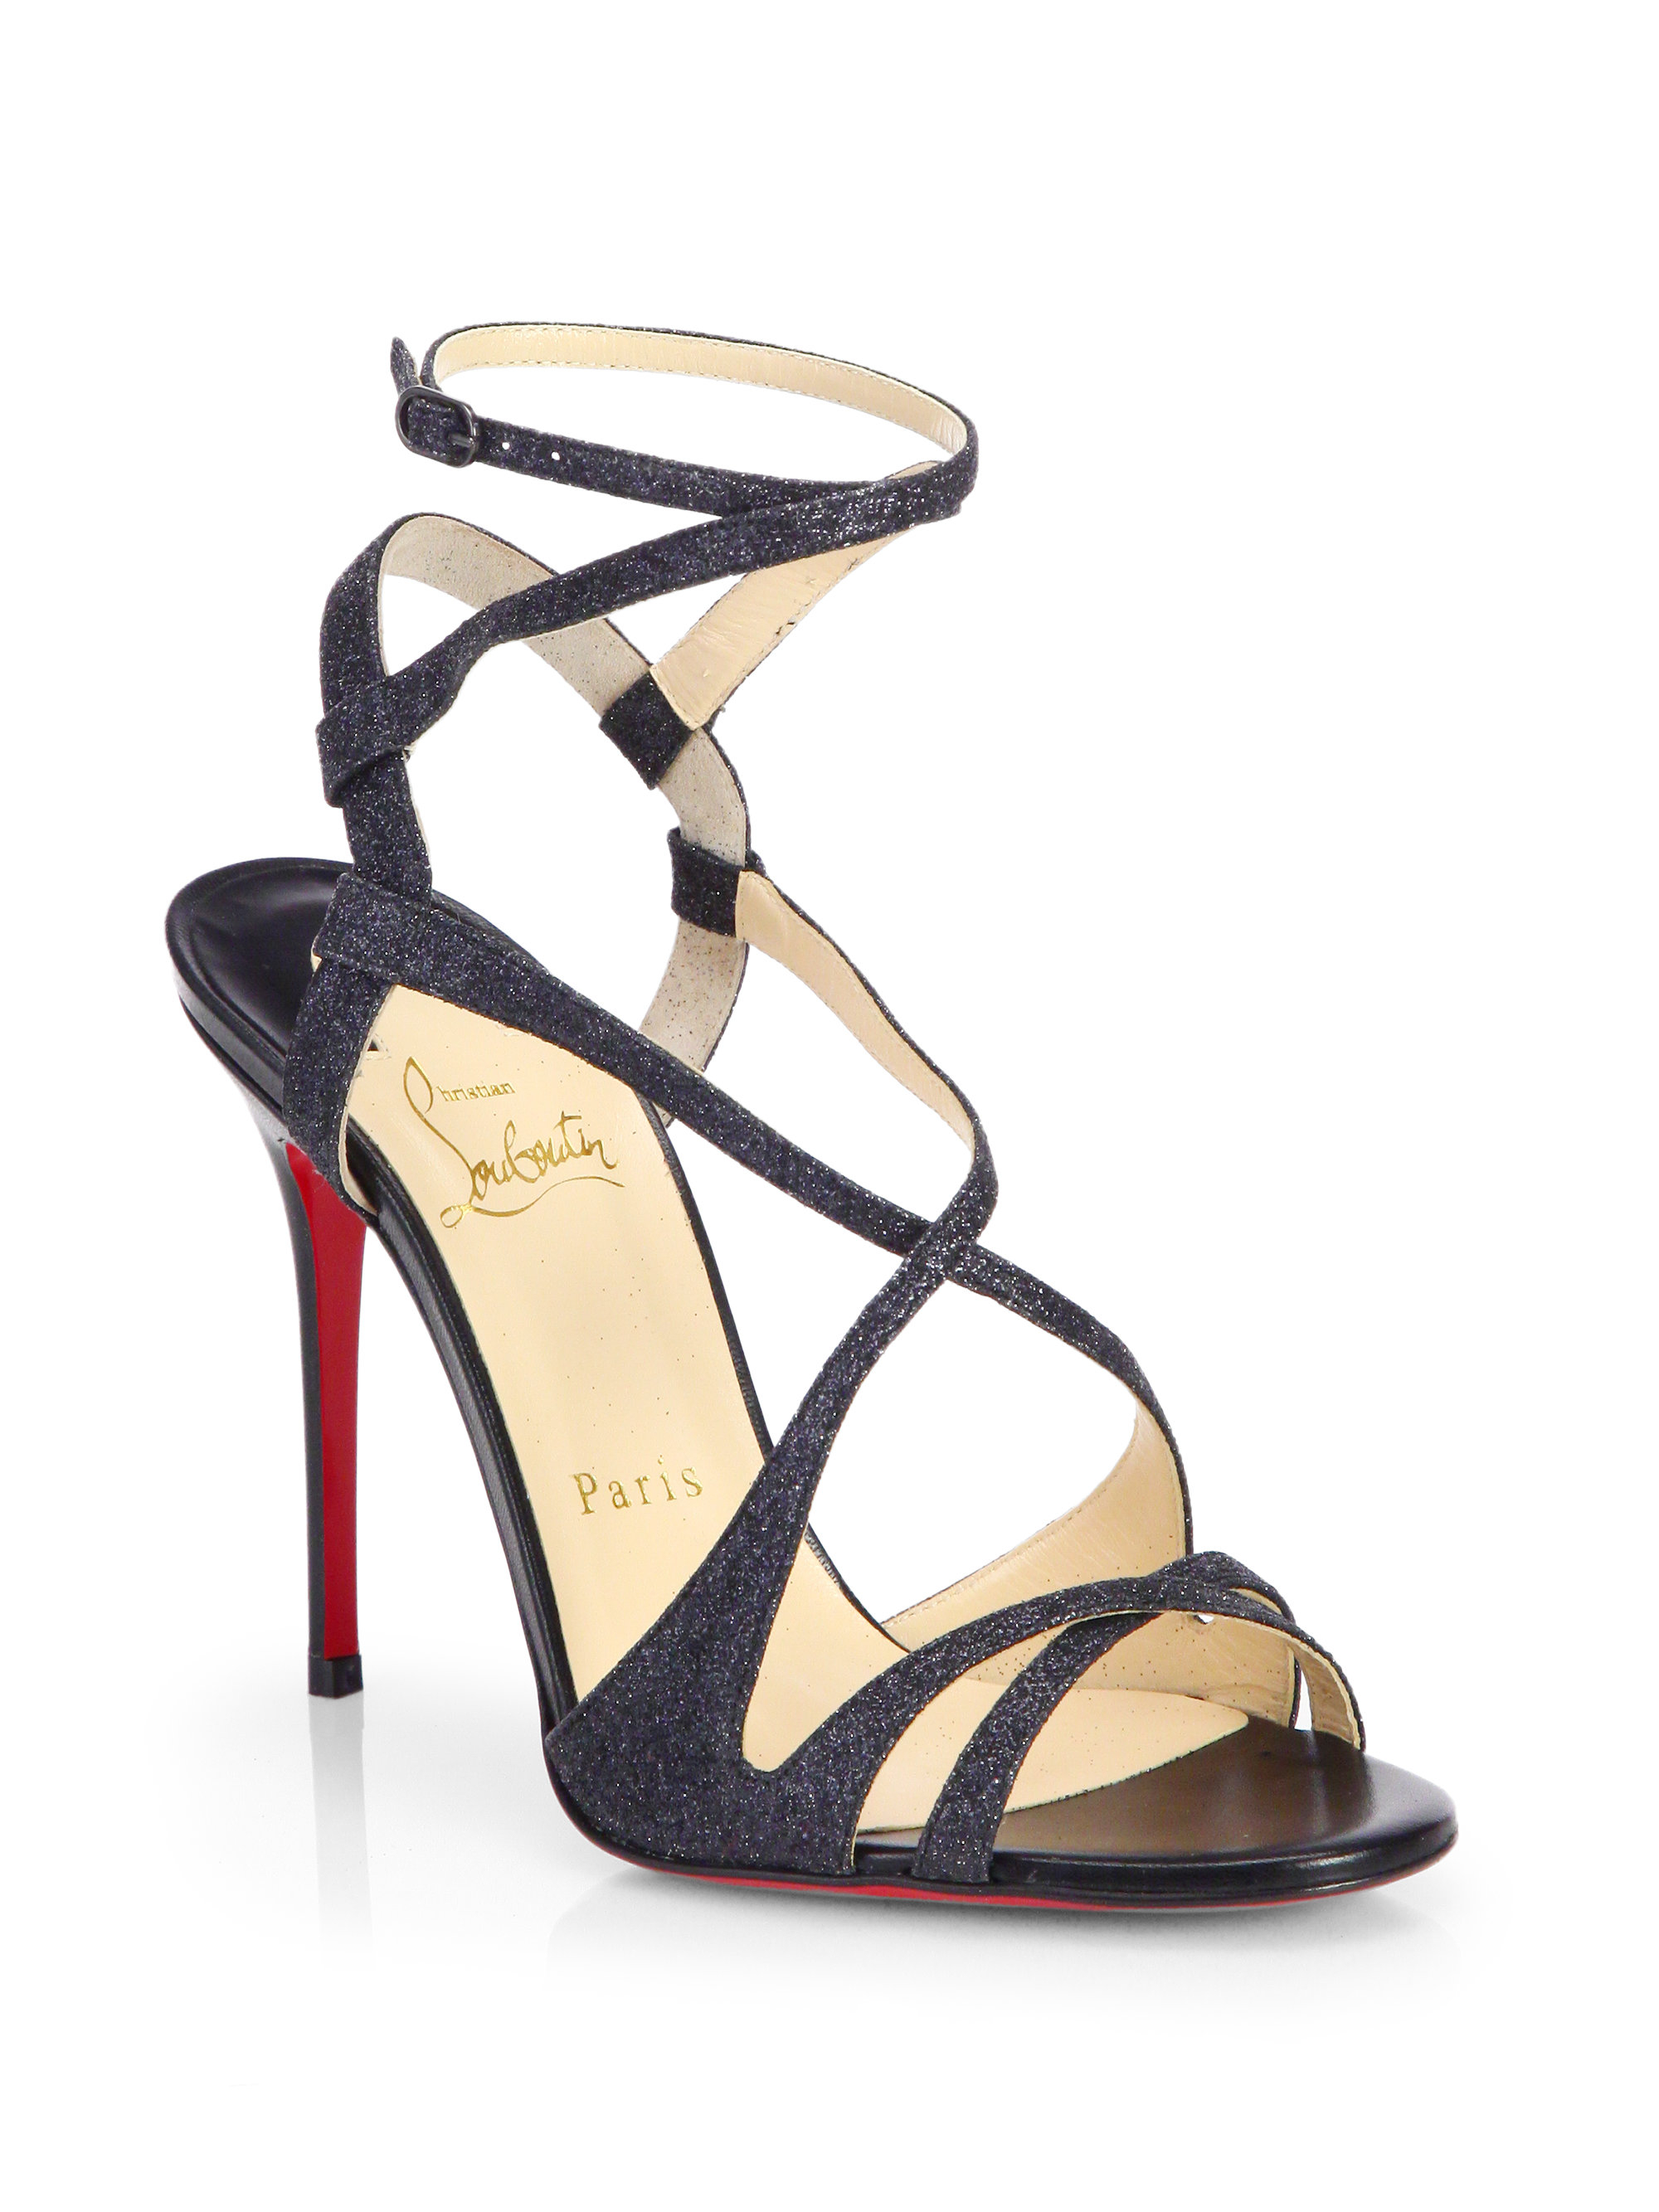 43b2b0431ac Christian Louboutin Black Audrey Glitter Strappy Sandals